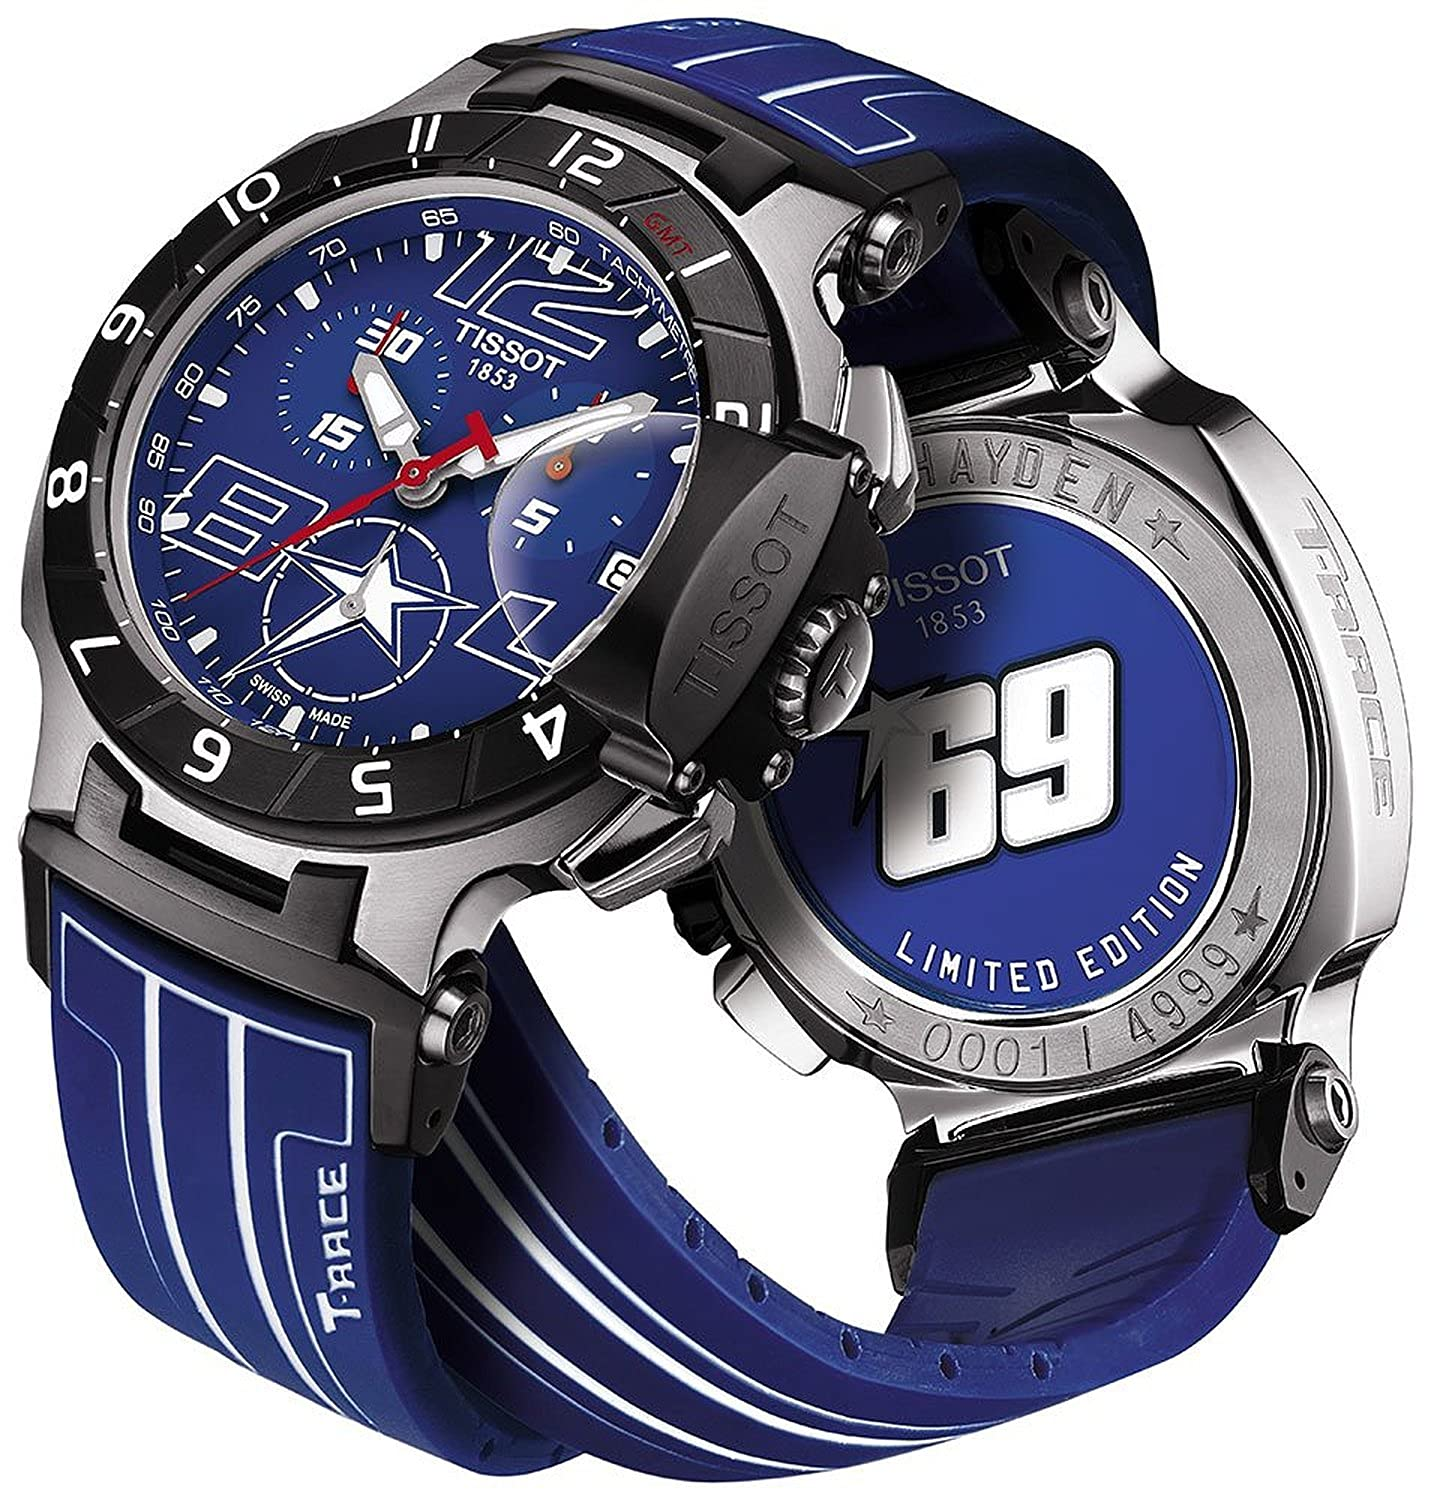 Amazon.com: TISSOT watch T-Race Nicky Hayden Ambassador Edition 2014 World limited 4999 this T0484172704700 Mens [regular imported goods]: Watches